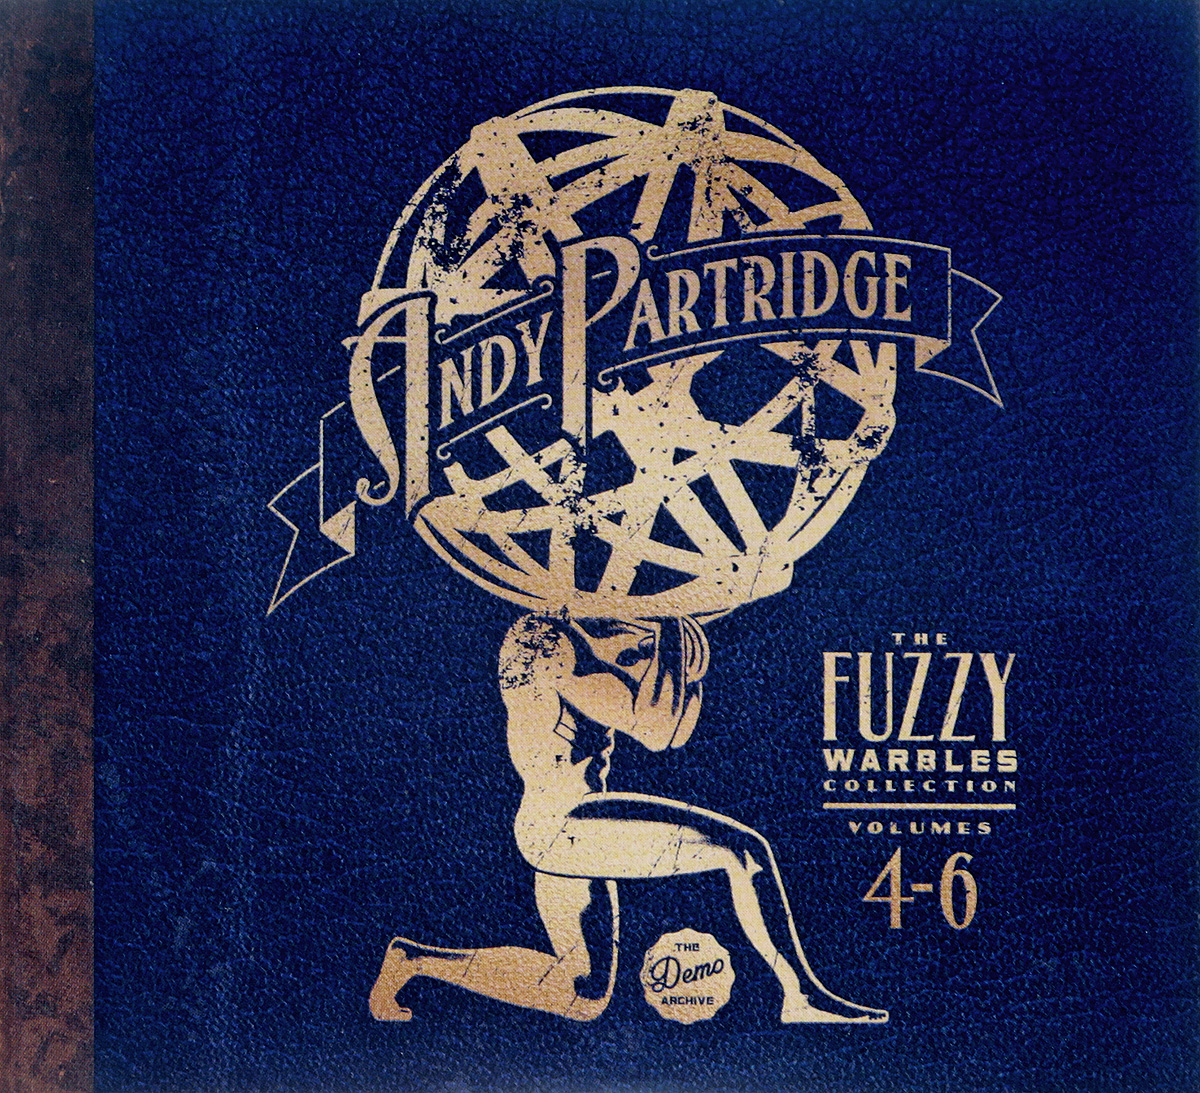 Andrew John Andy Partridge Andy Partridge. Fuzzy Warbles Volume 4-6 (3 CD) andrew john andy partridge andy partridge powers